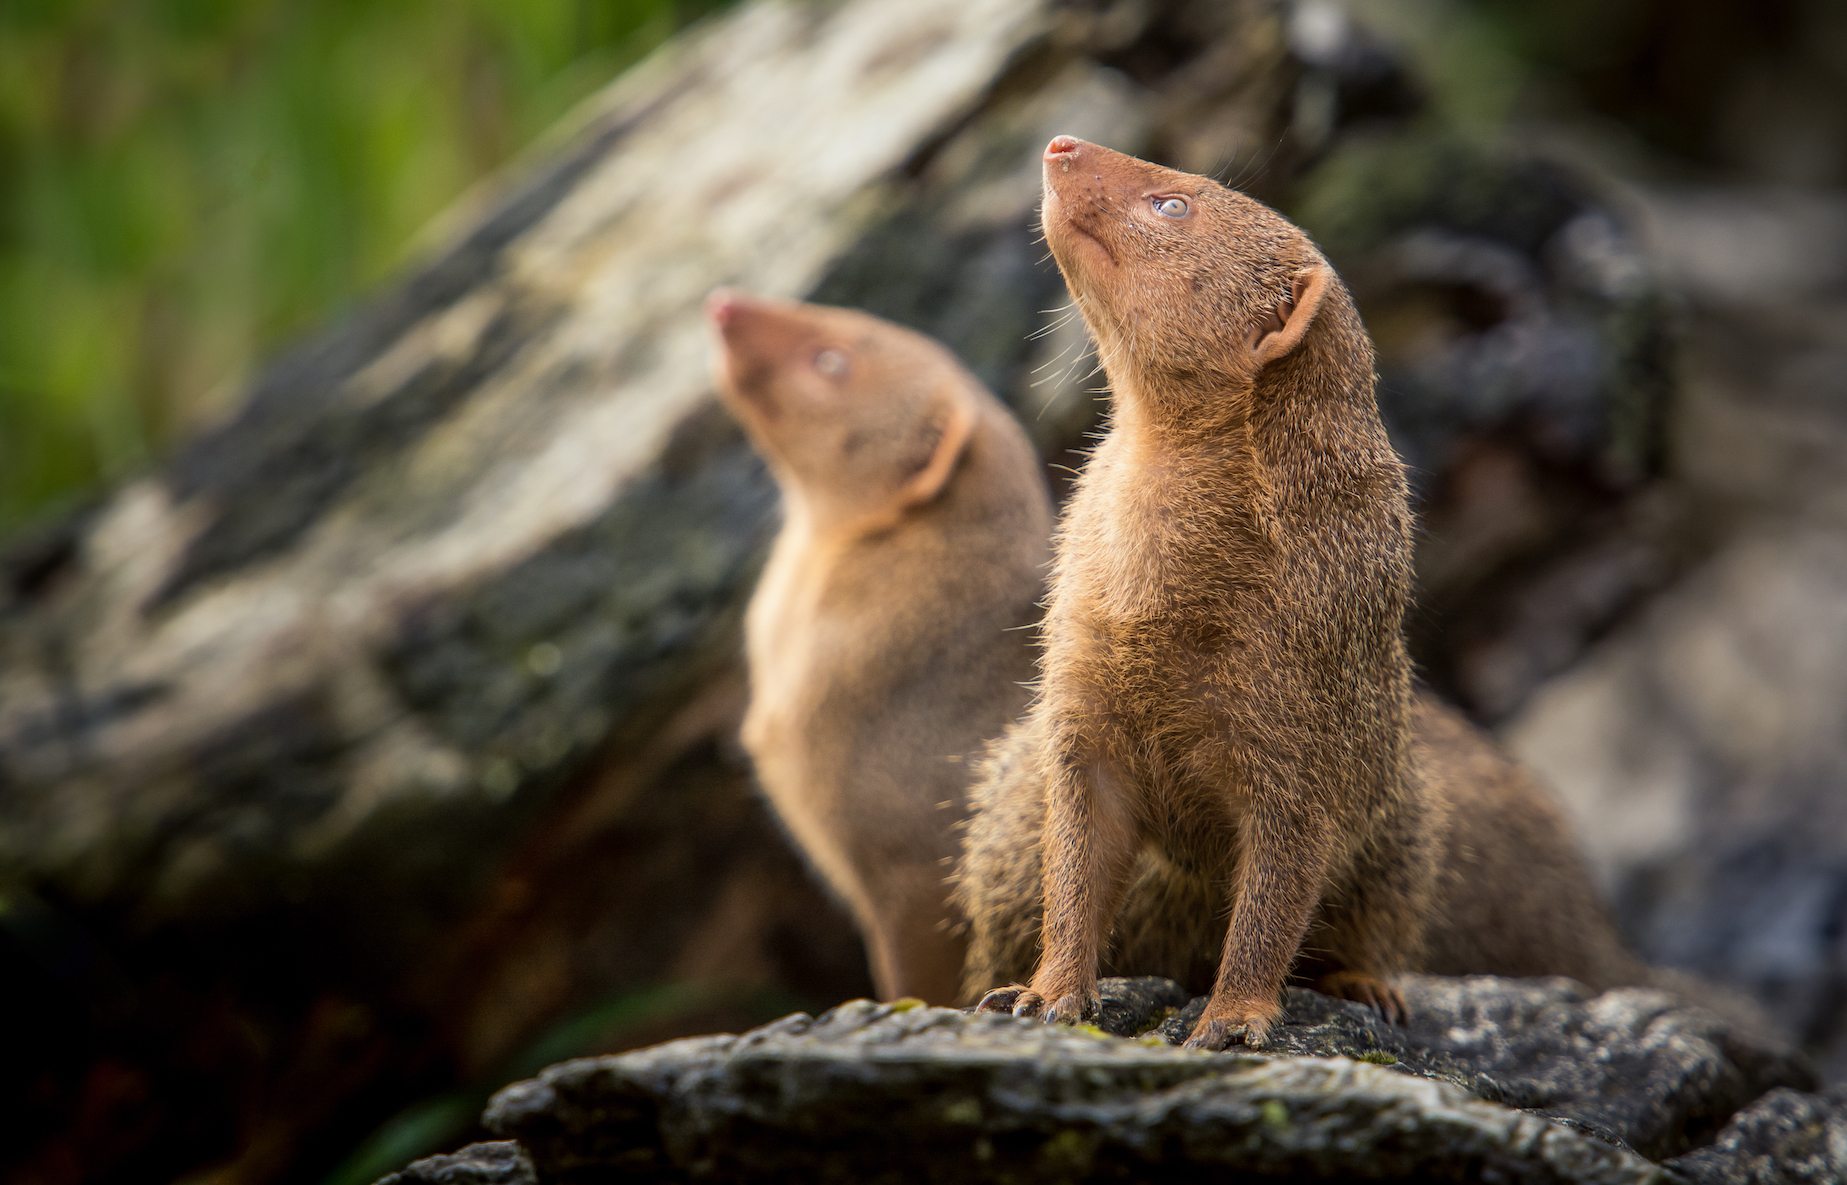 Researchers at the University of Bristol have discovered that dwarf mongooses make a point to remember when another individual helps them out.